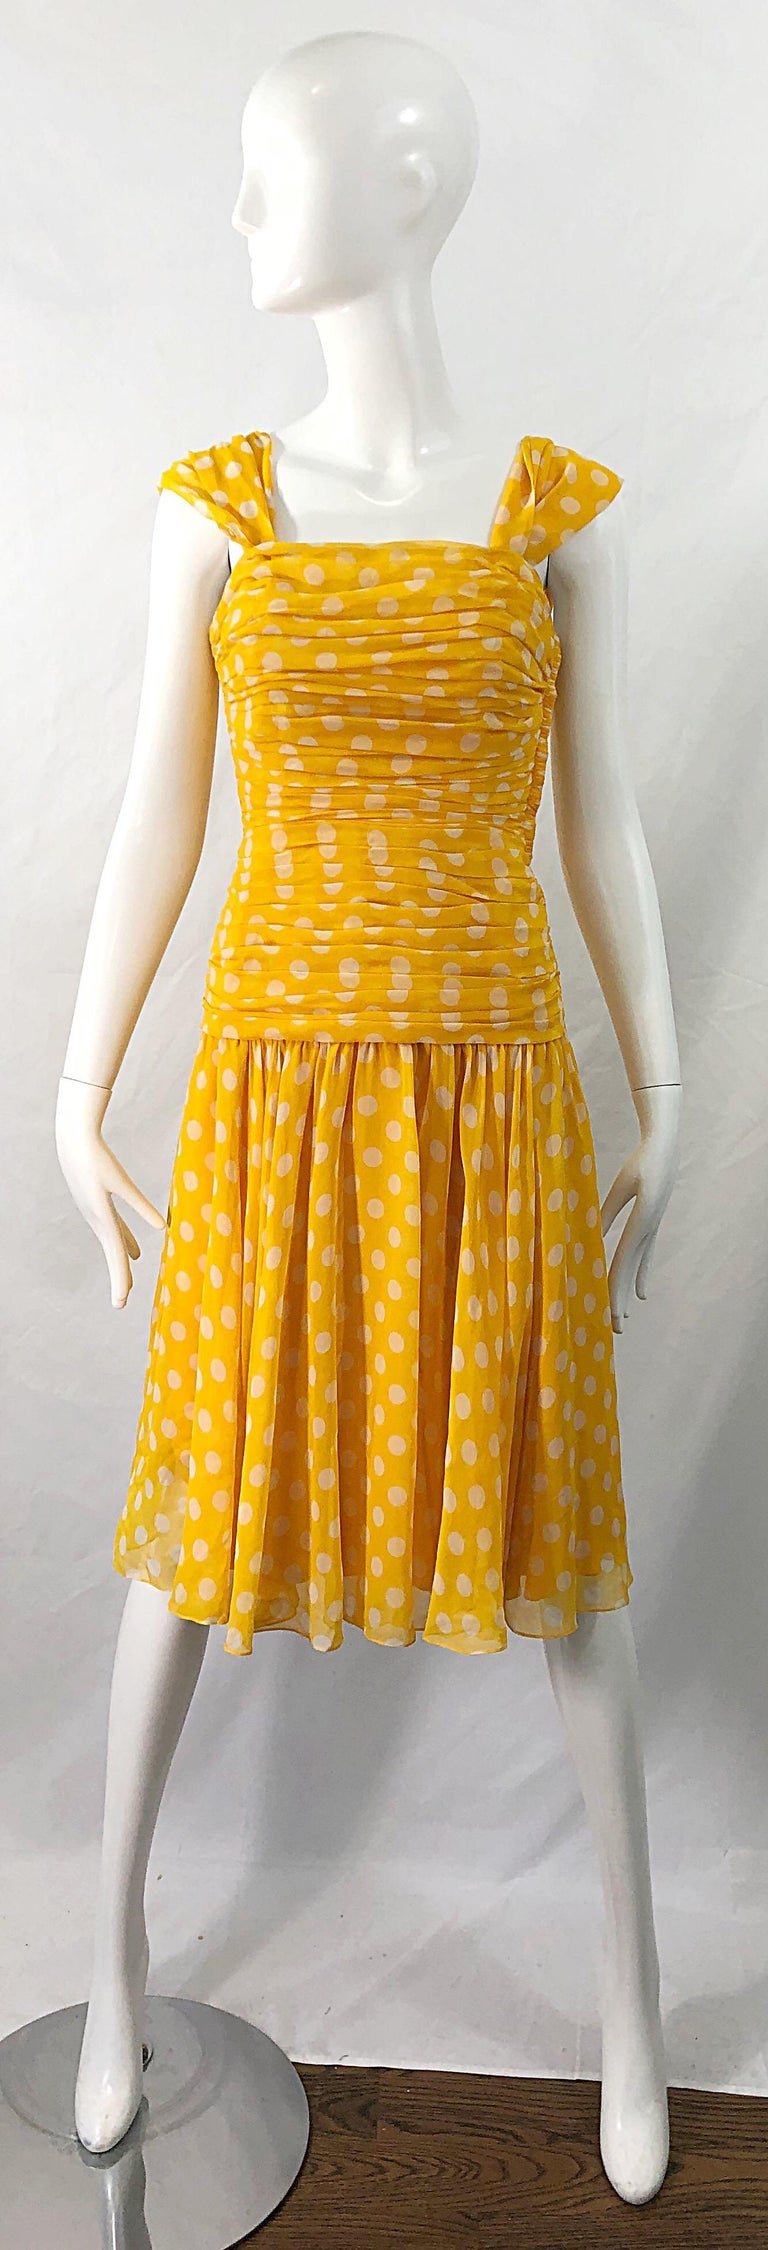 Flirty 1980s ADELE SIMPSON yellow and white silk chiffon polka dot dress ! Features a boned ruched bodice, with a slightly dropped waist. Multiple layers of chiffon on the skirt. Fully lined. Hidden zipper up the side with hook-and-eye closure.